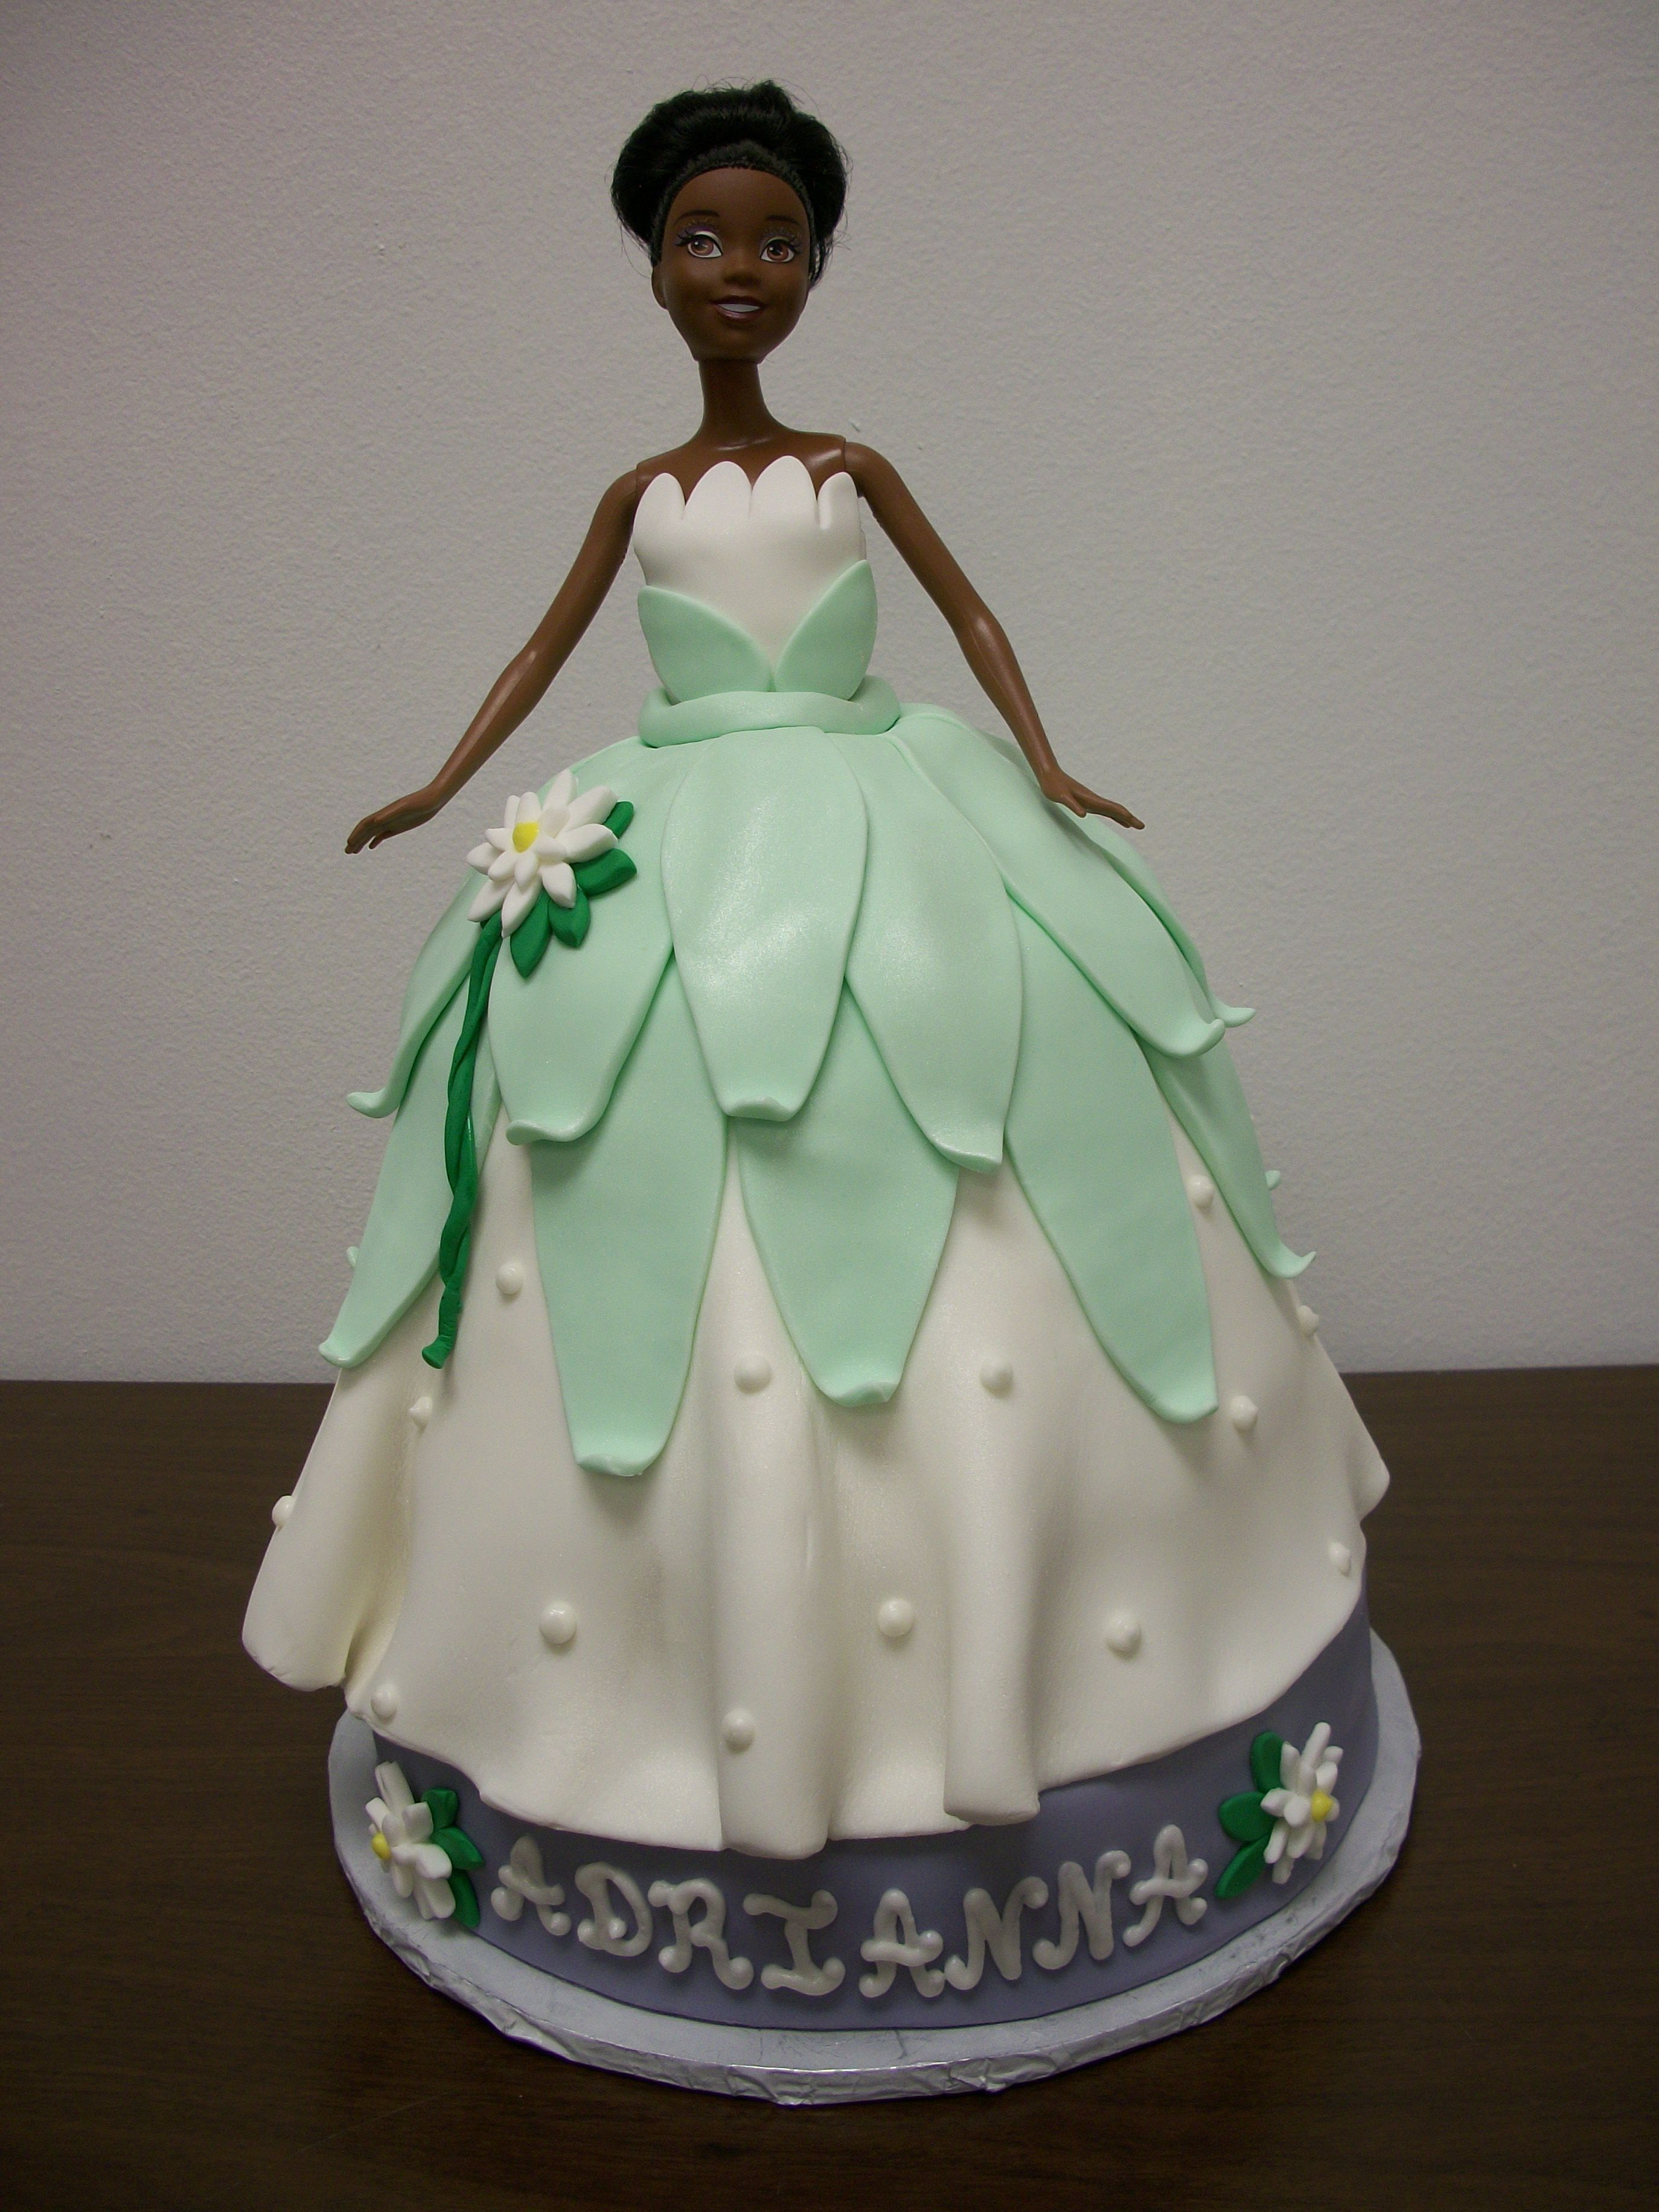 Cake using a princess tiana doll for my friends daughter